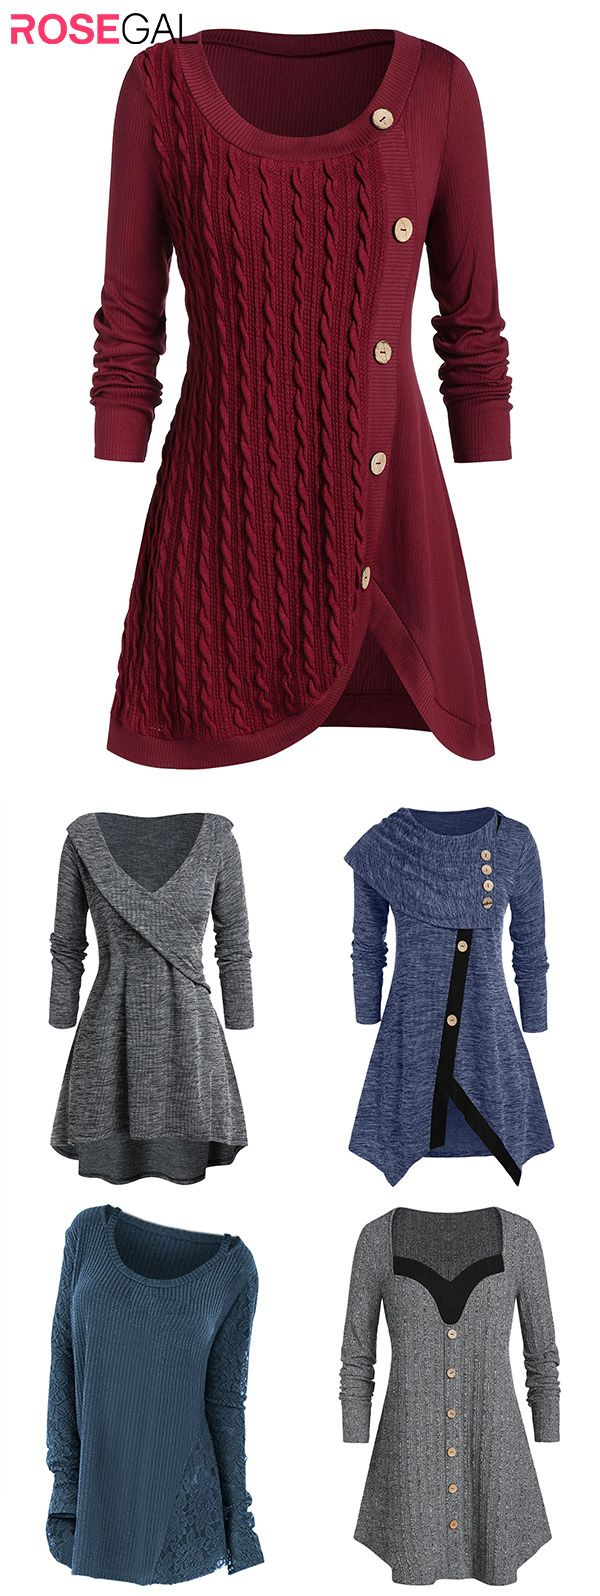 Rosegal plus size Fall Sweater outfits Women autumn fashion cardigans ideas